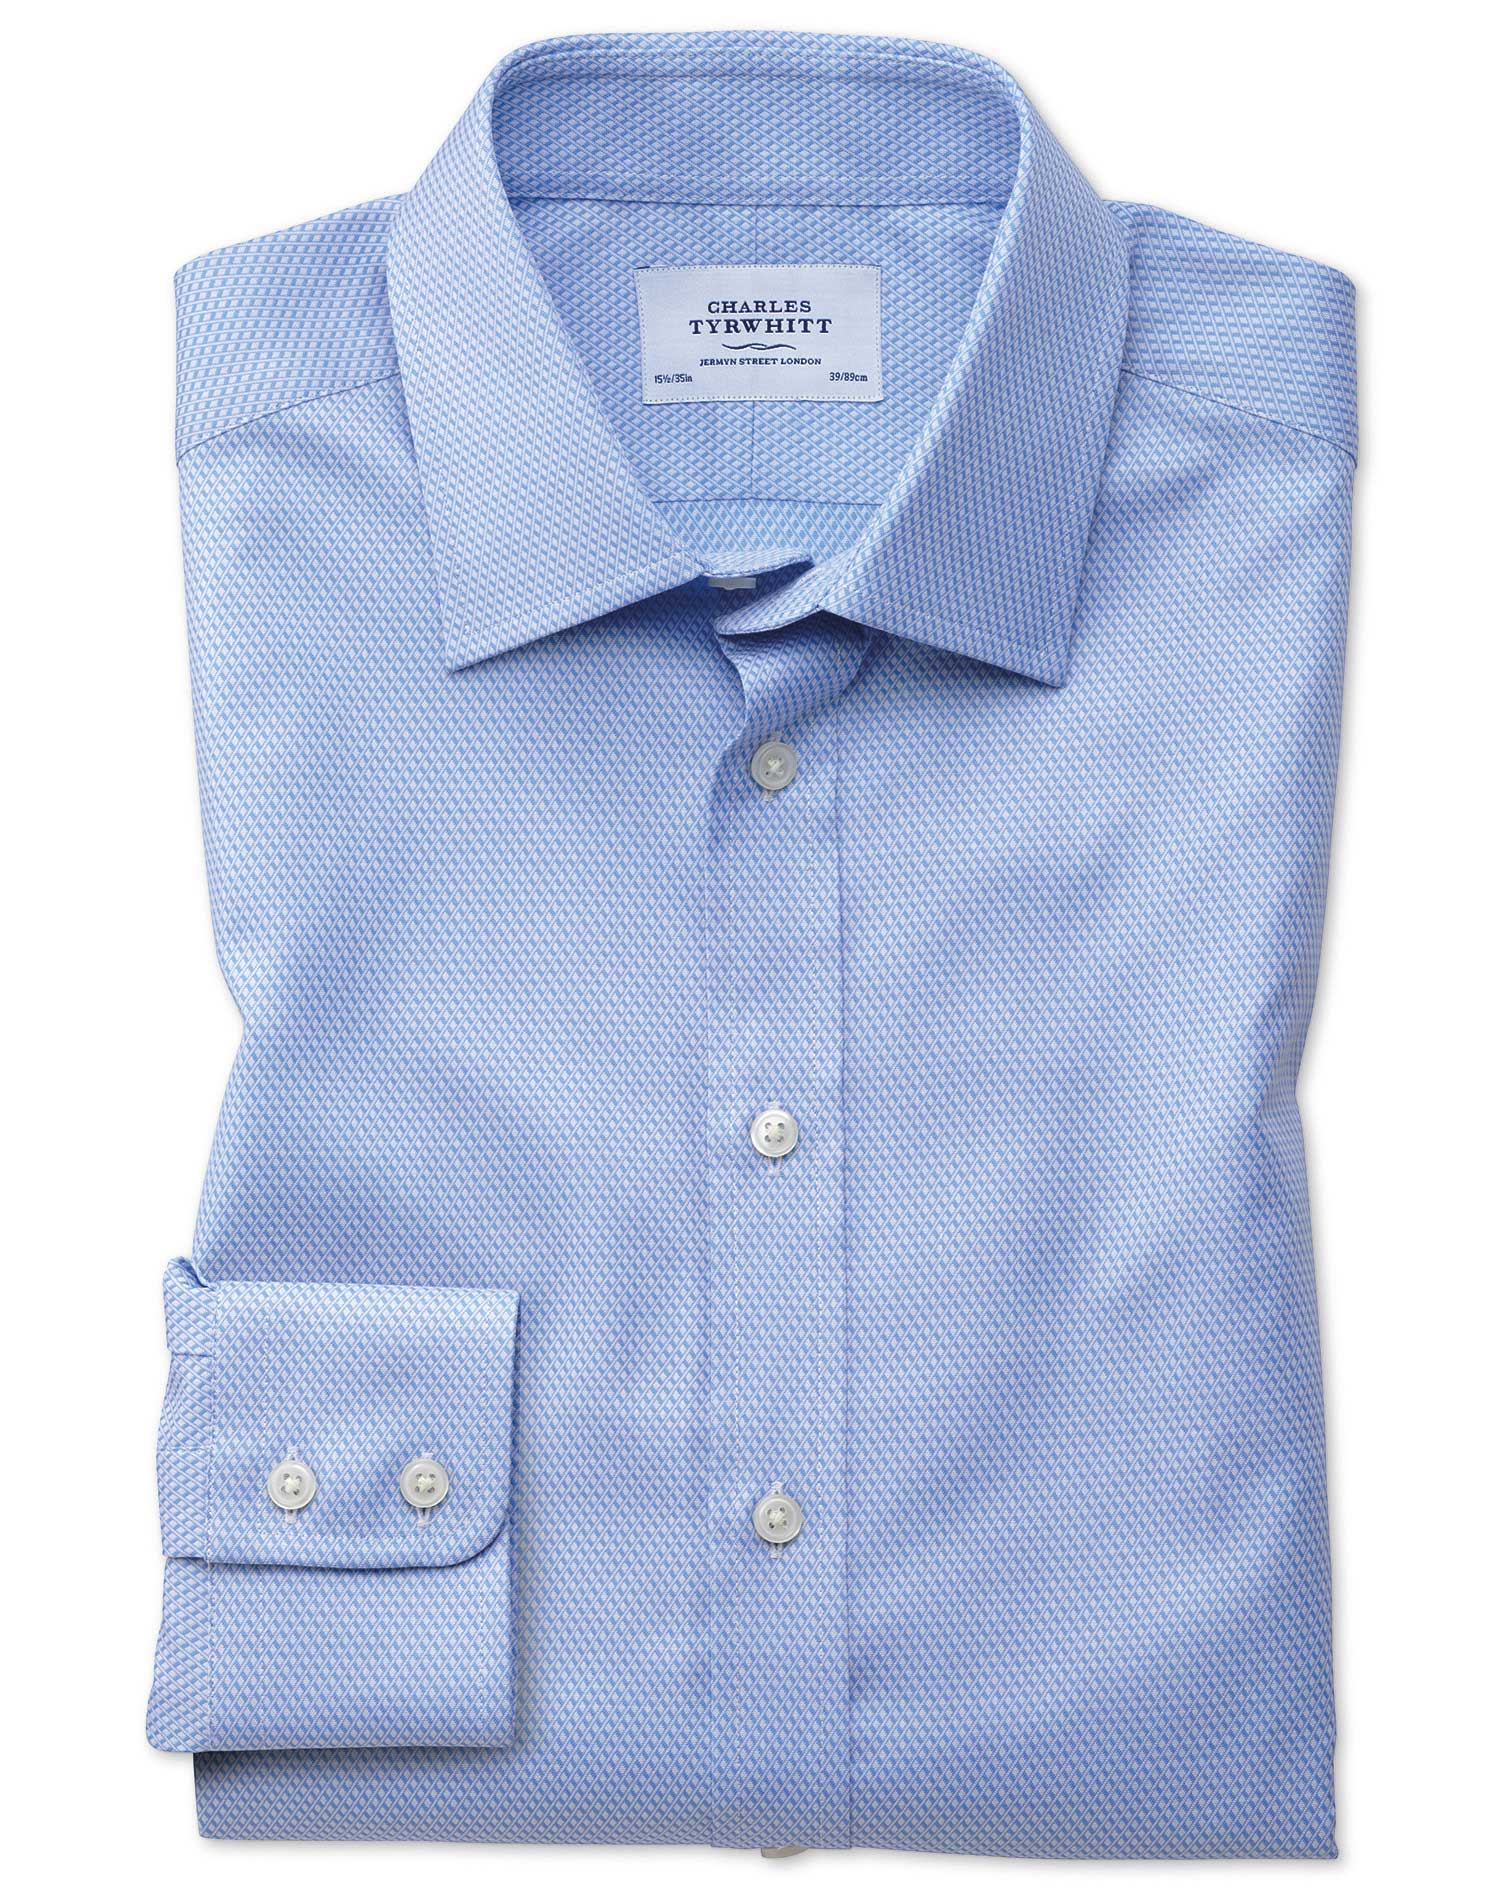 Classic Fit Egyptian Cotton Diamond Pattern Sky Blue Formal Shirt Single Cuff Size 16.5/36 by Charle